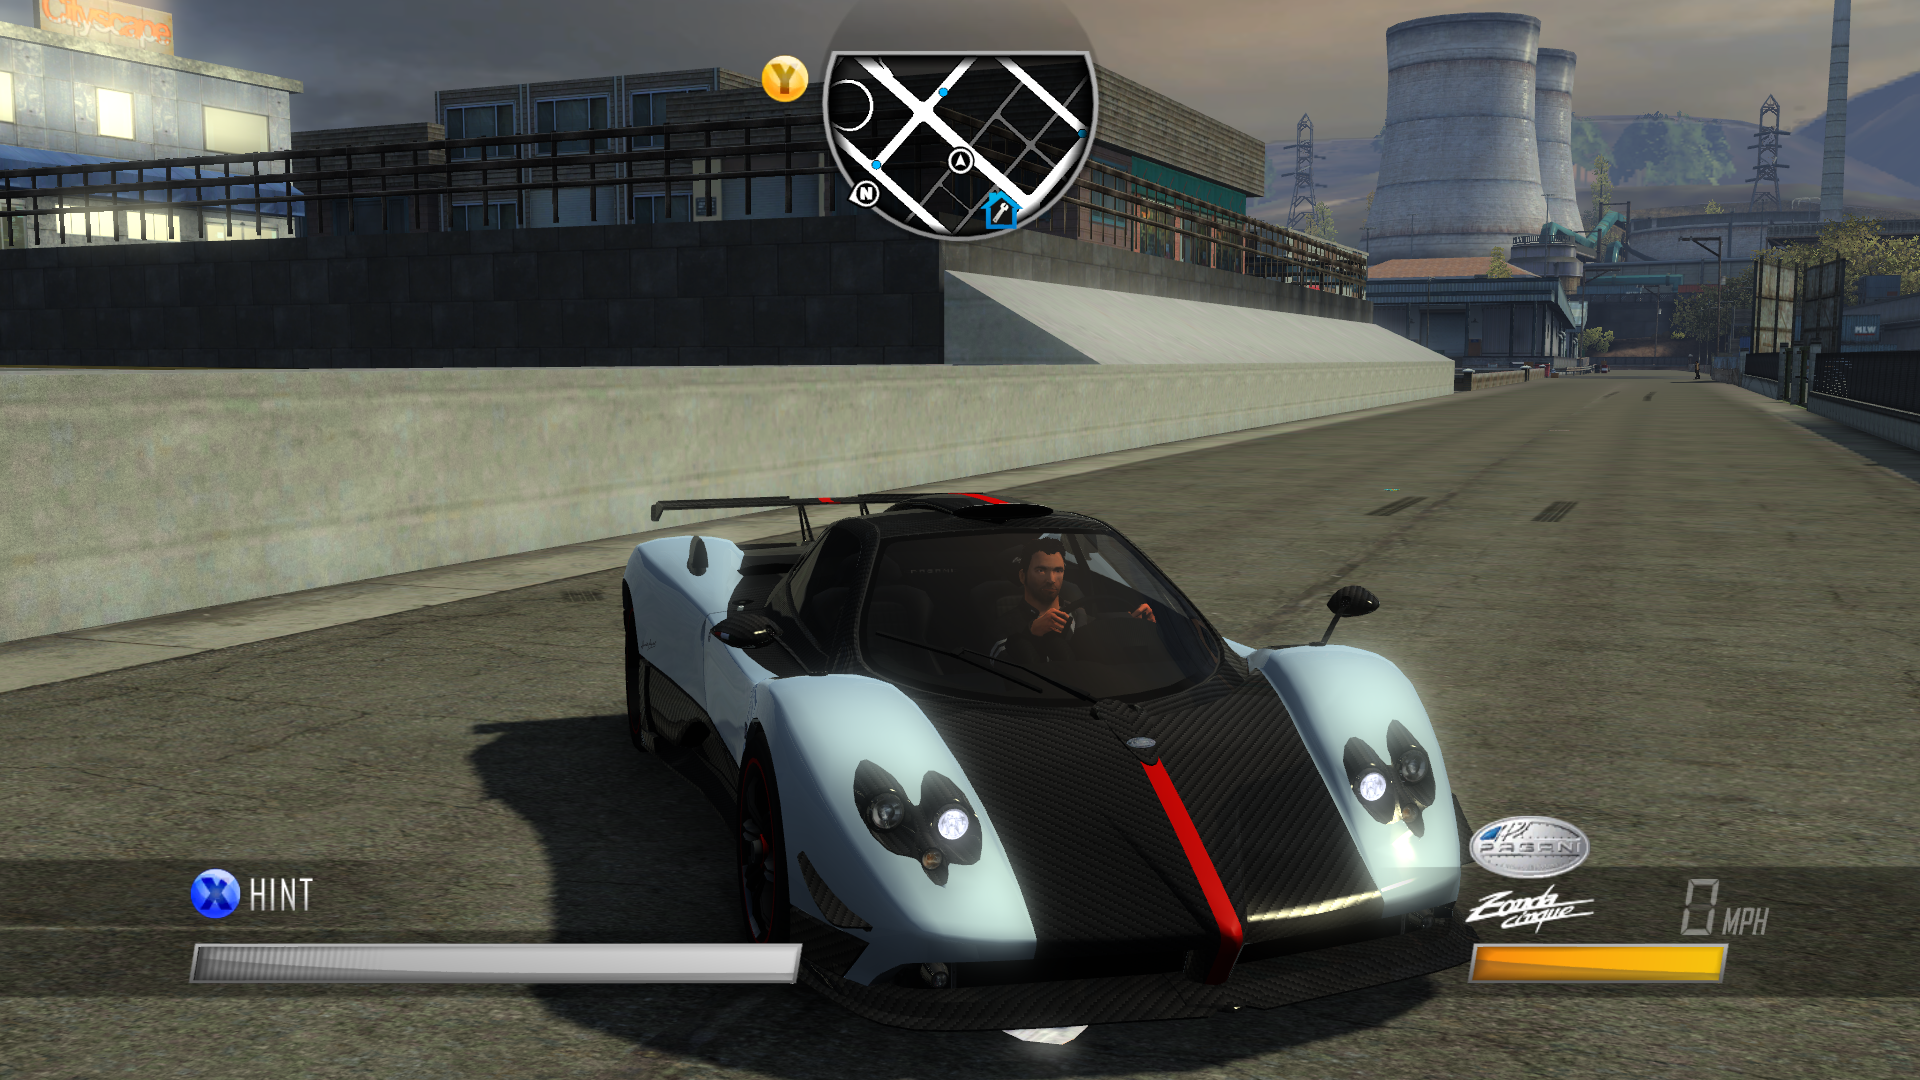 [Image: 1494146186_driver_2013-09-15_05-18-14-84.bmp.png]